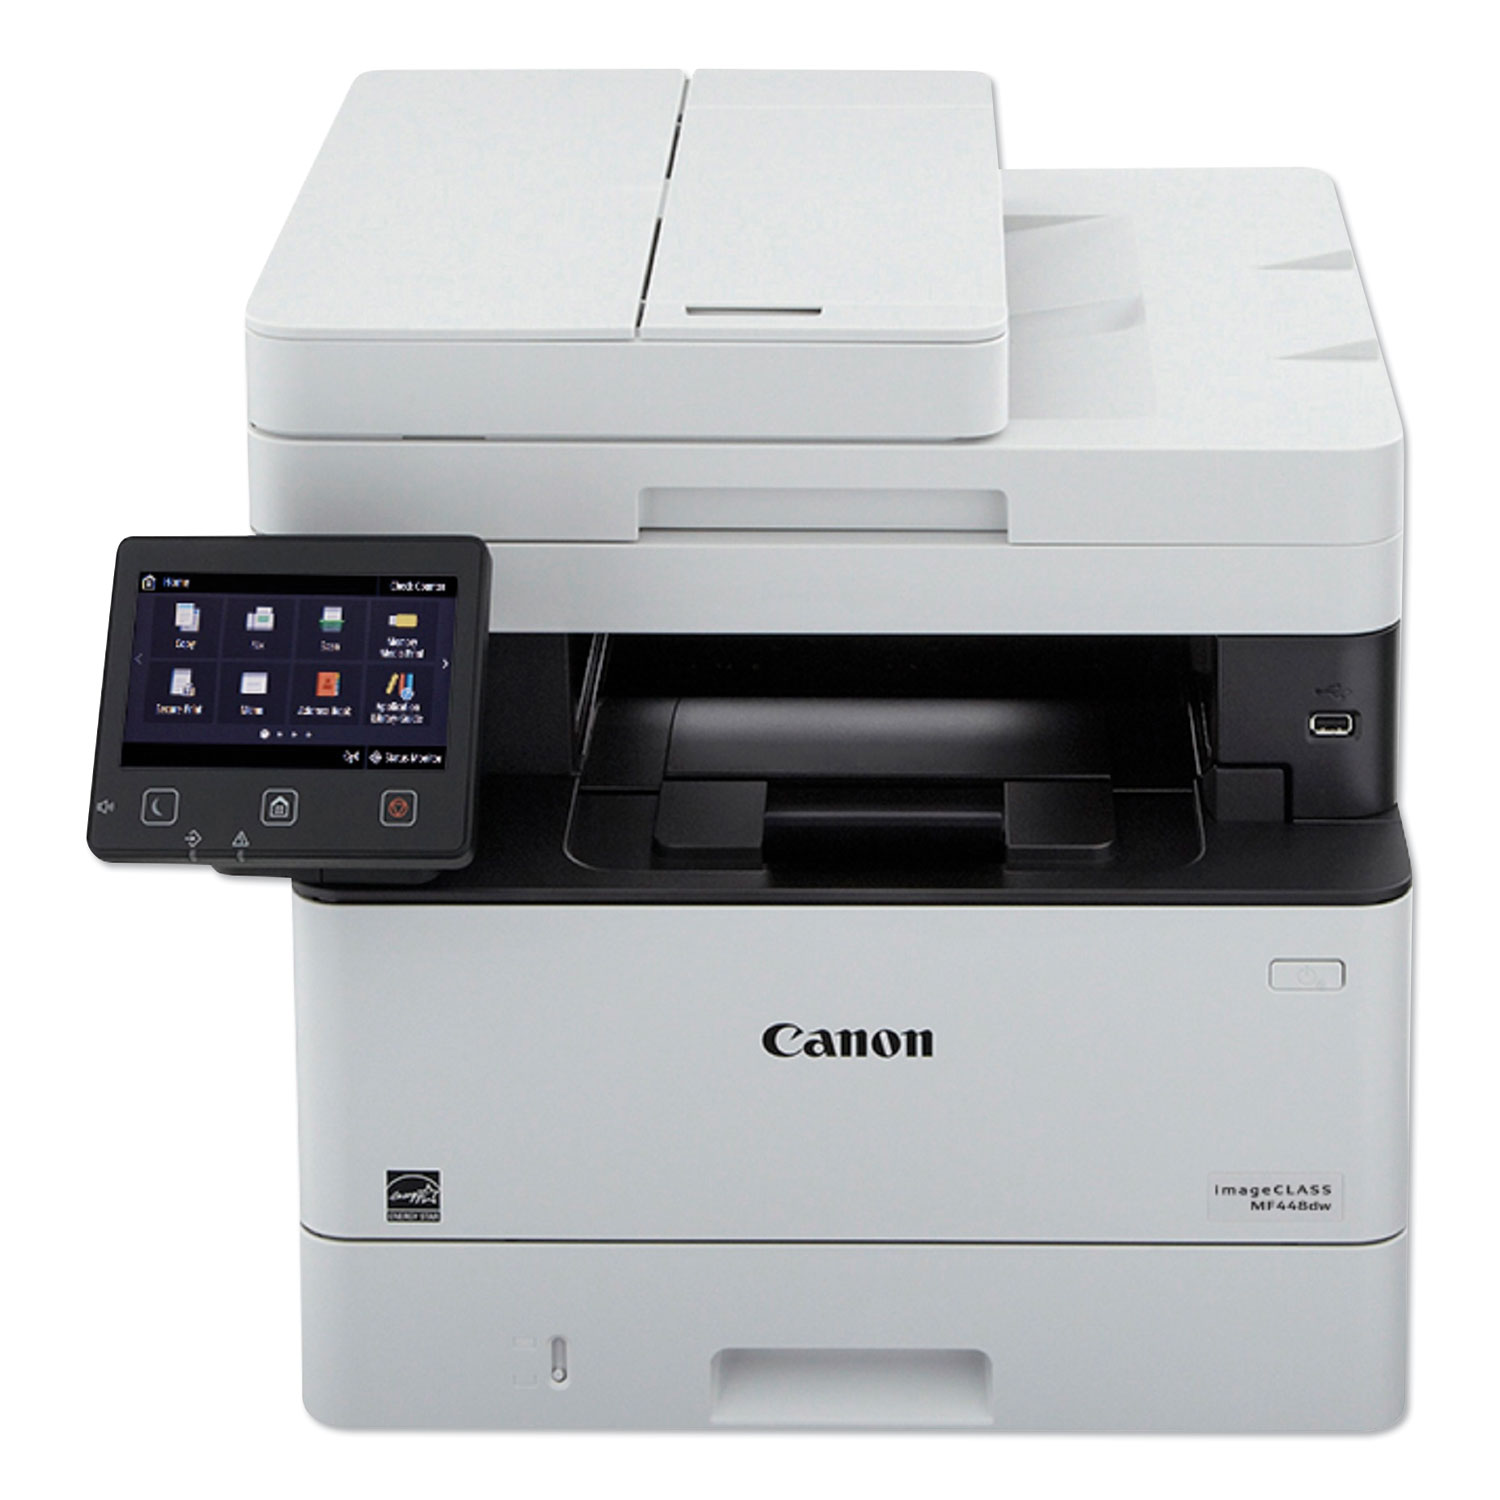 imageCLASS MF448dw Black and White Compact Multifunction Printer, Copy/Fax/Print/Scan